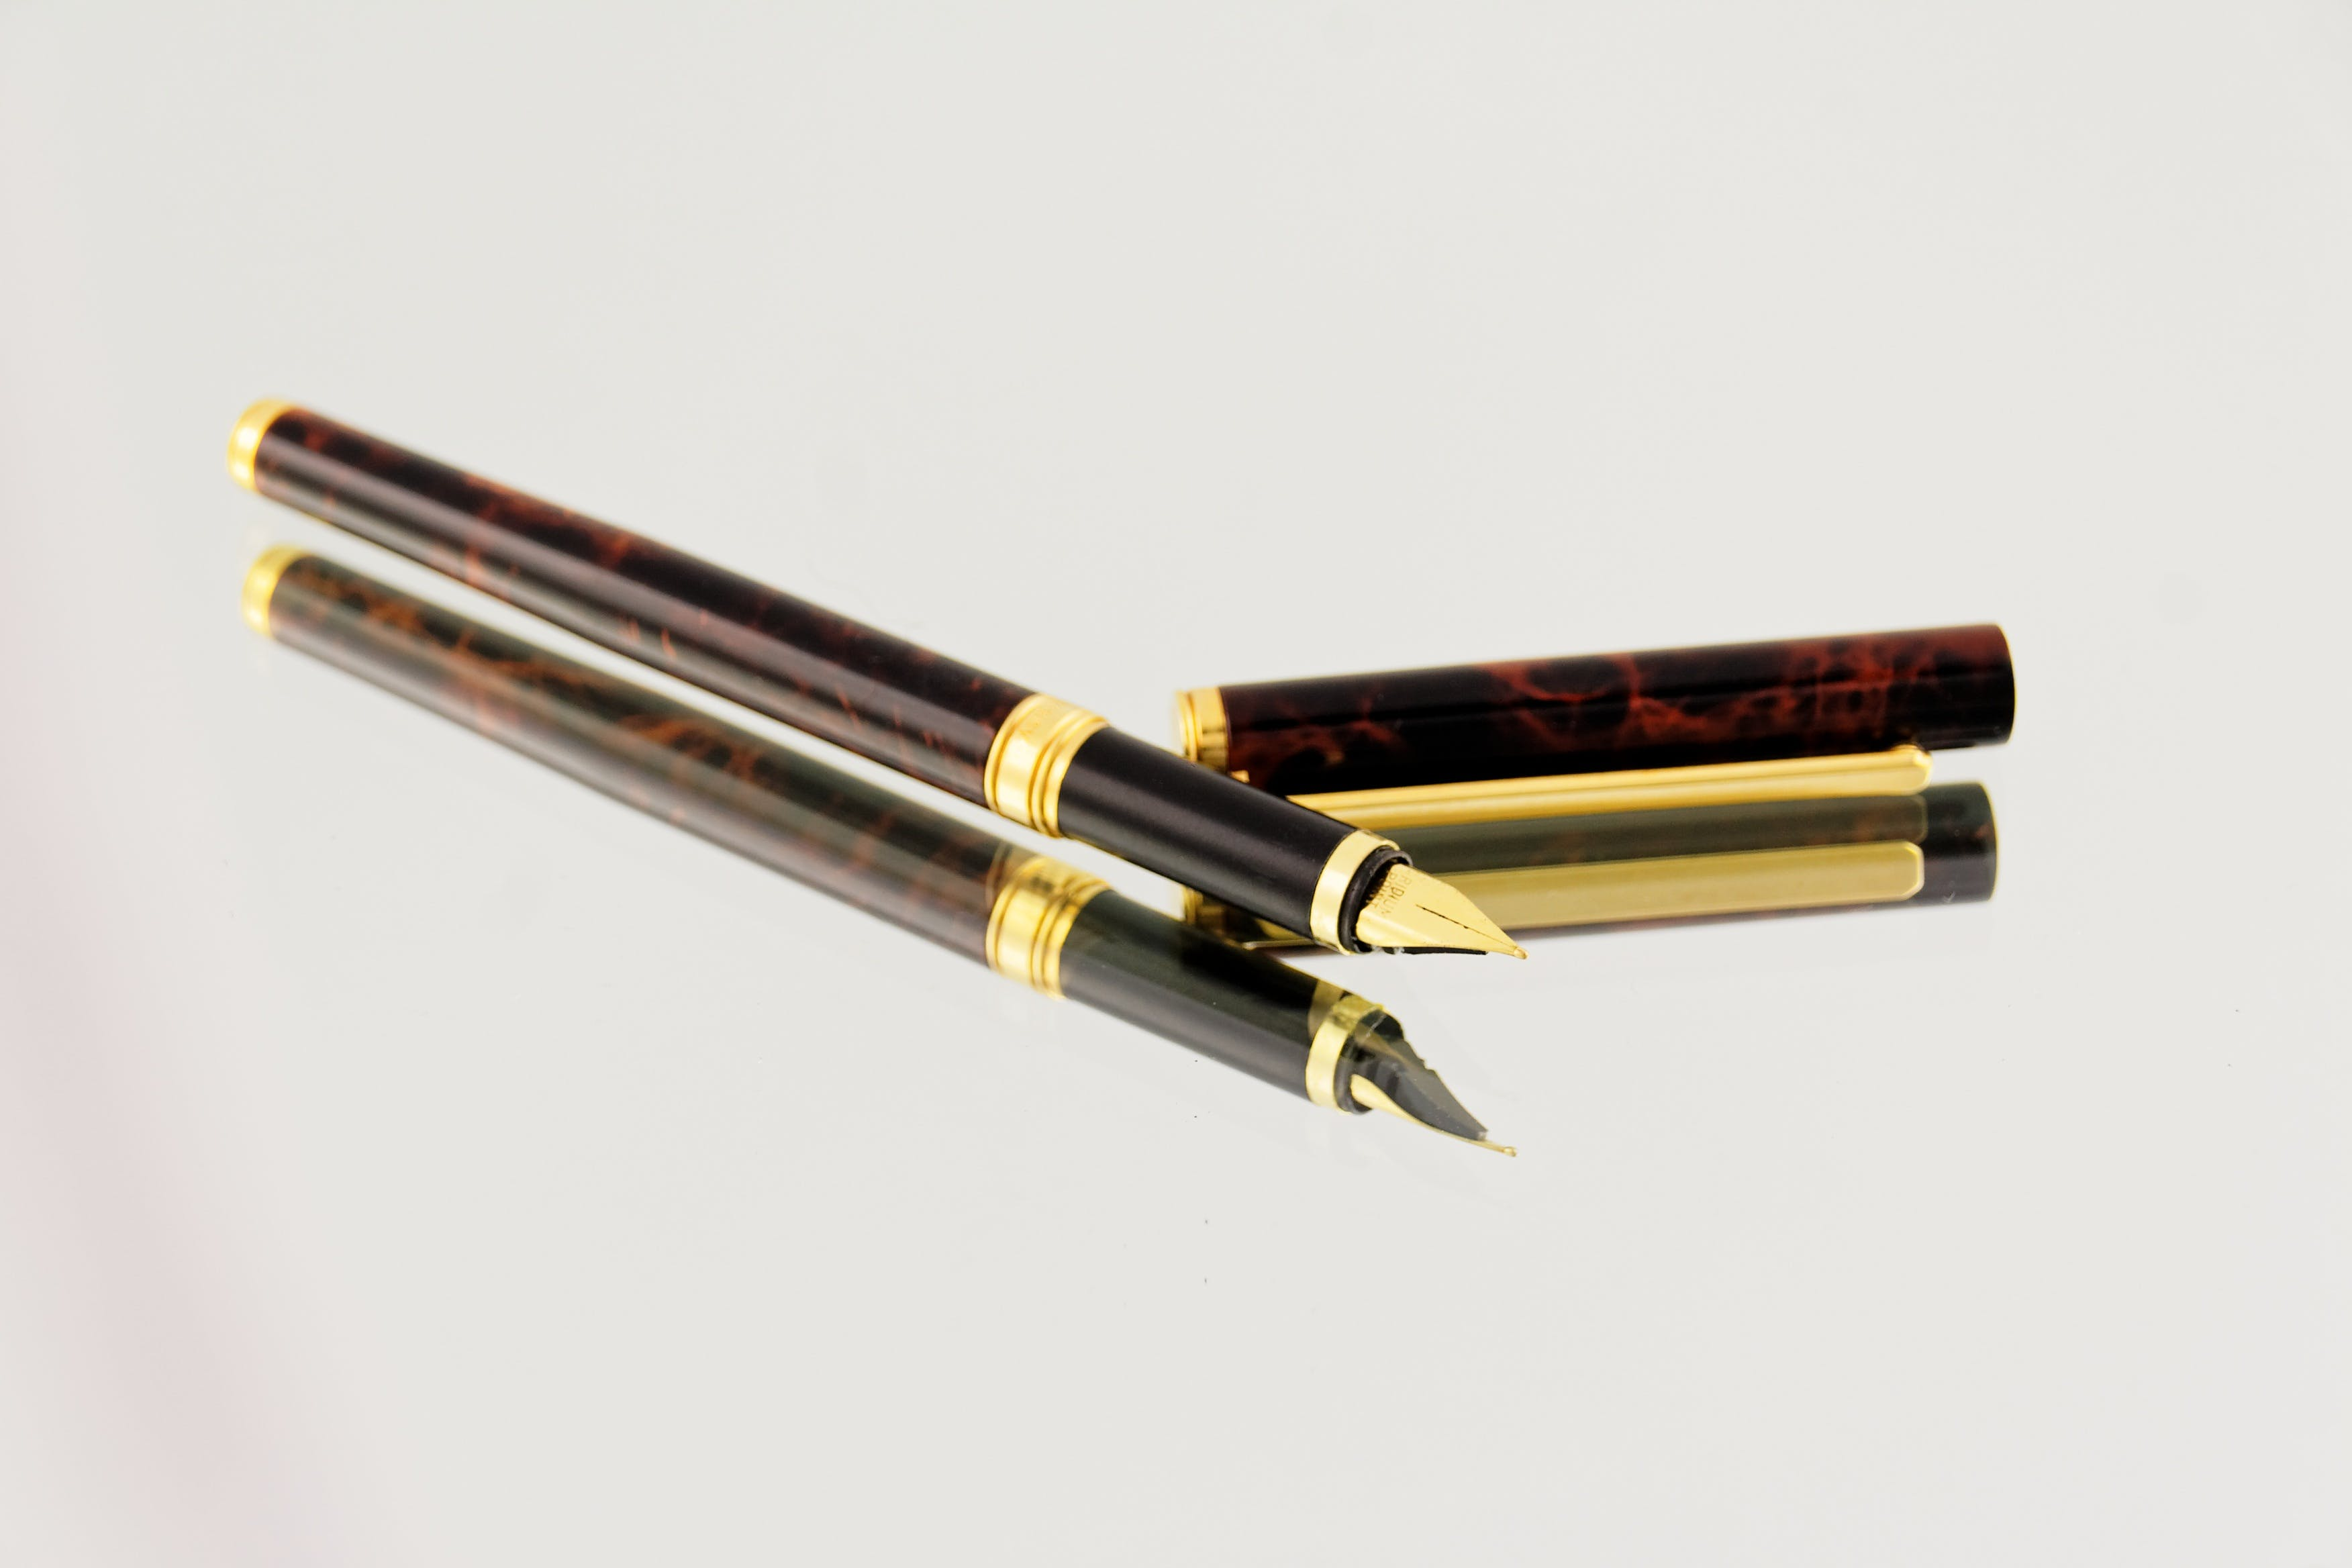 Two Brown Fountain Pens